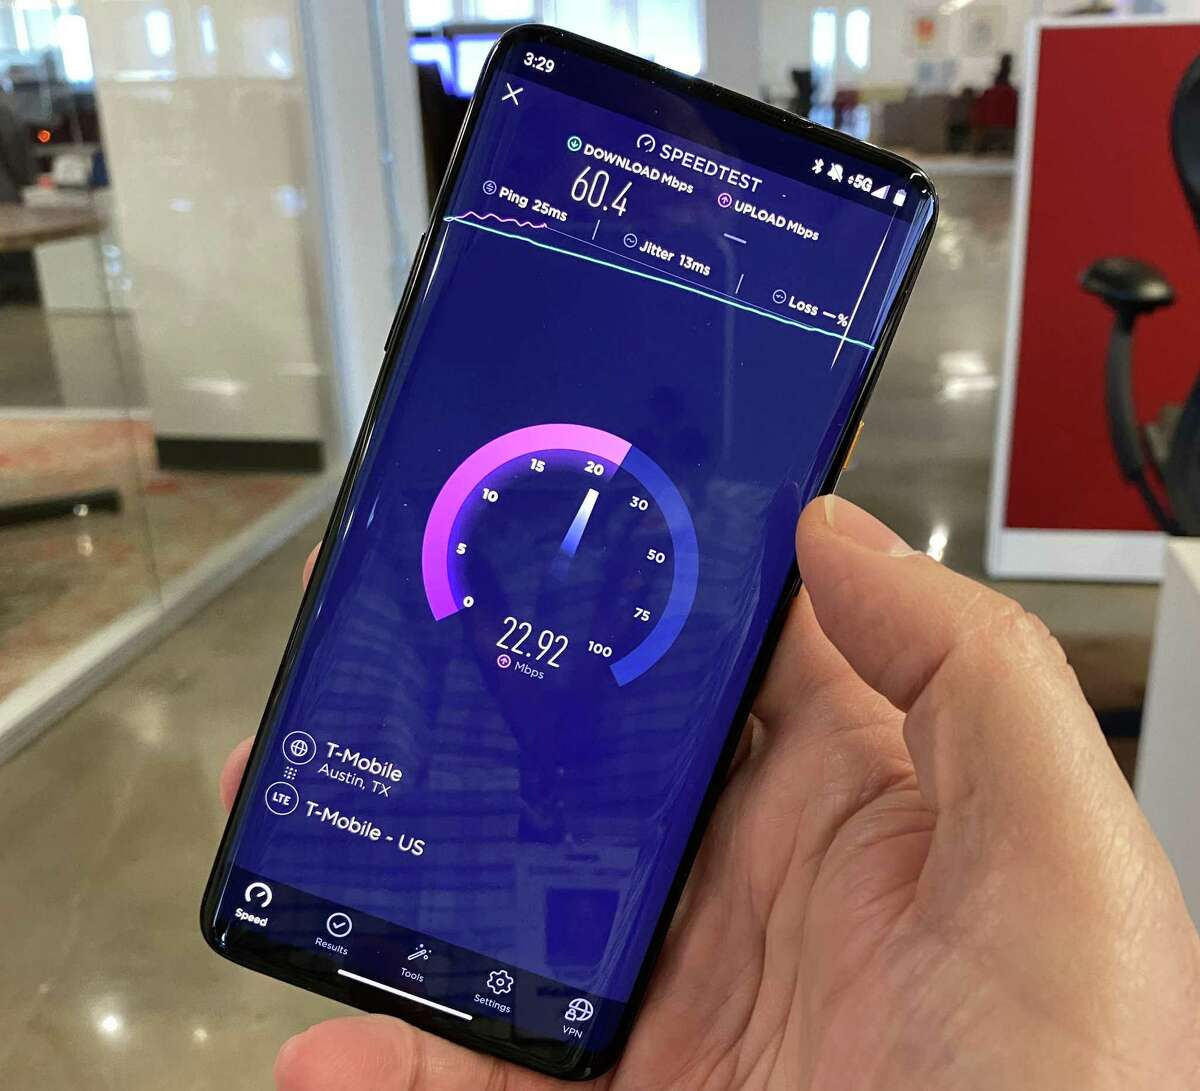 T-Mobile says its 5G speeds are about 20 percent faster than those of 4G LTE.